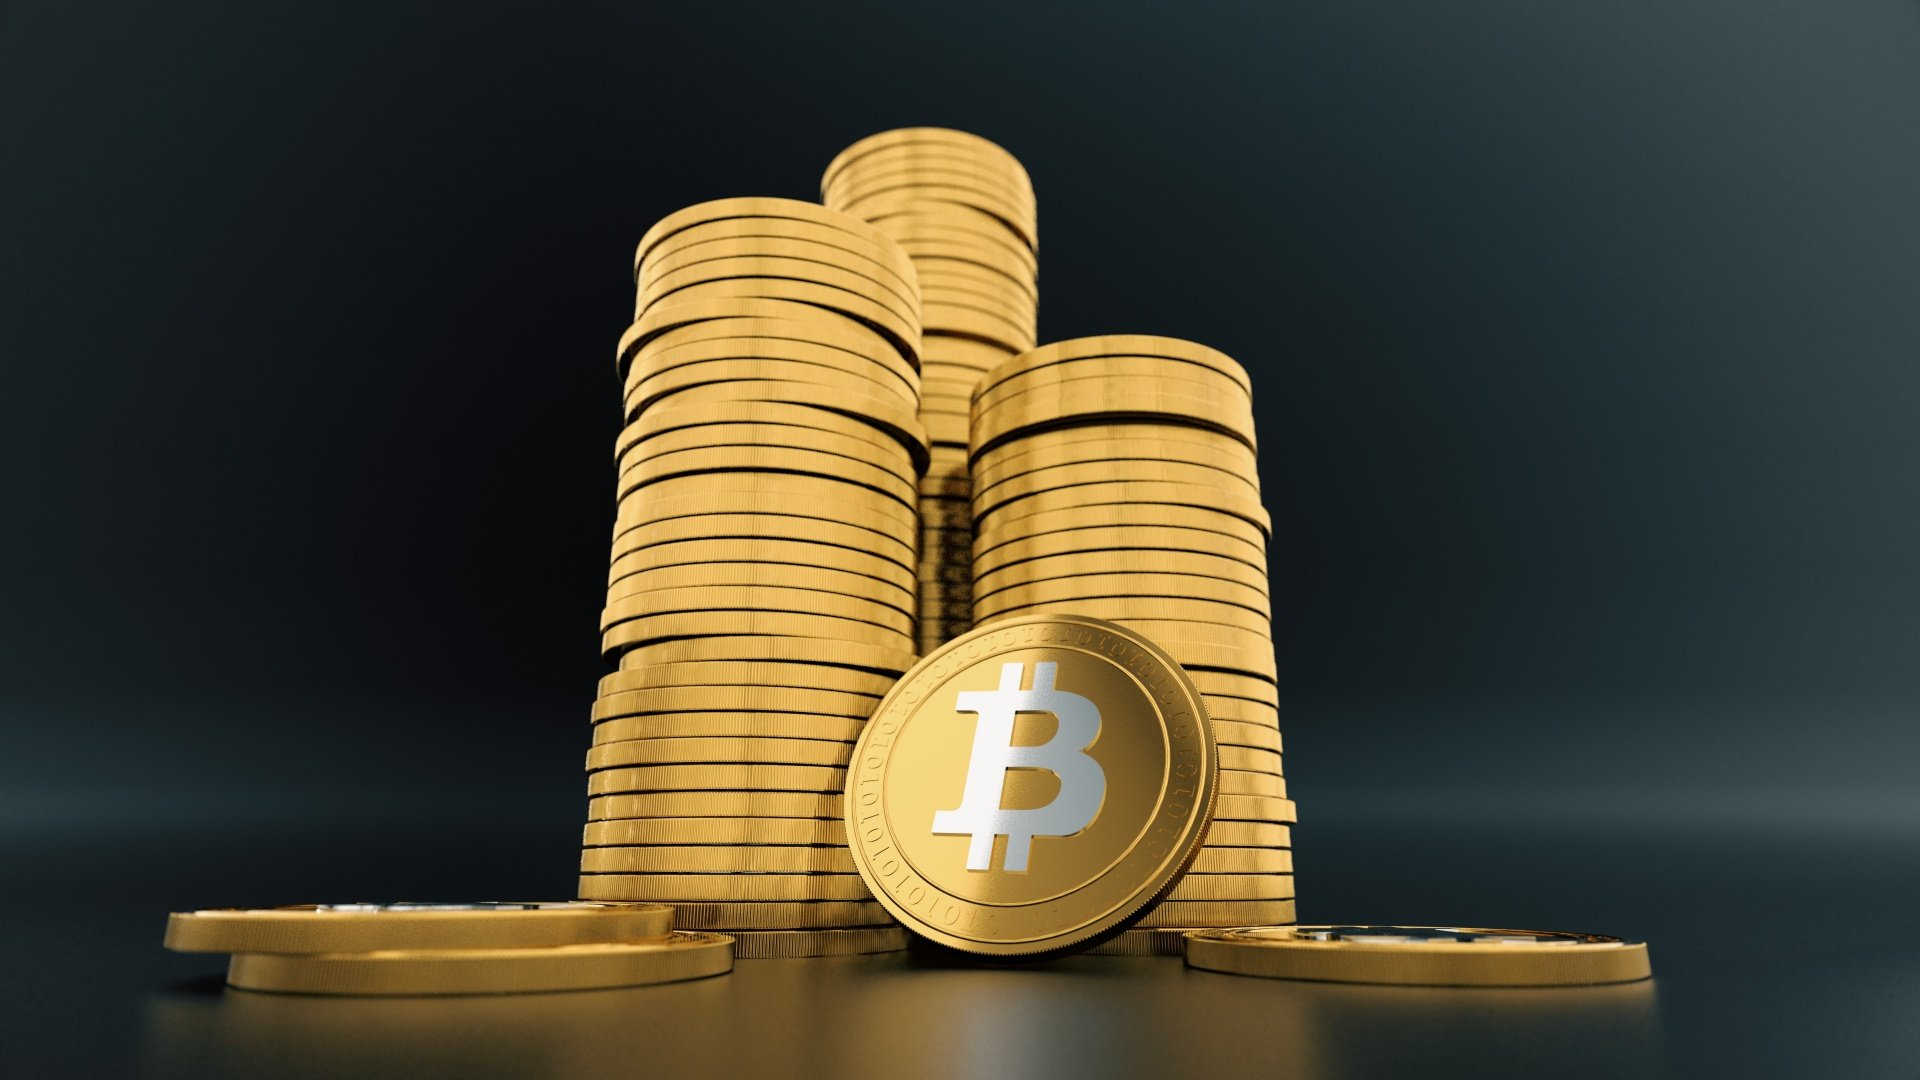 Financial professionals and retail investors eye buying more cryptocurrency, see higher valuations ahead 13